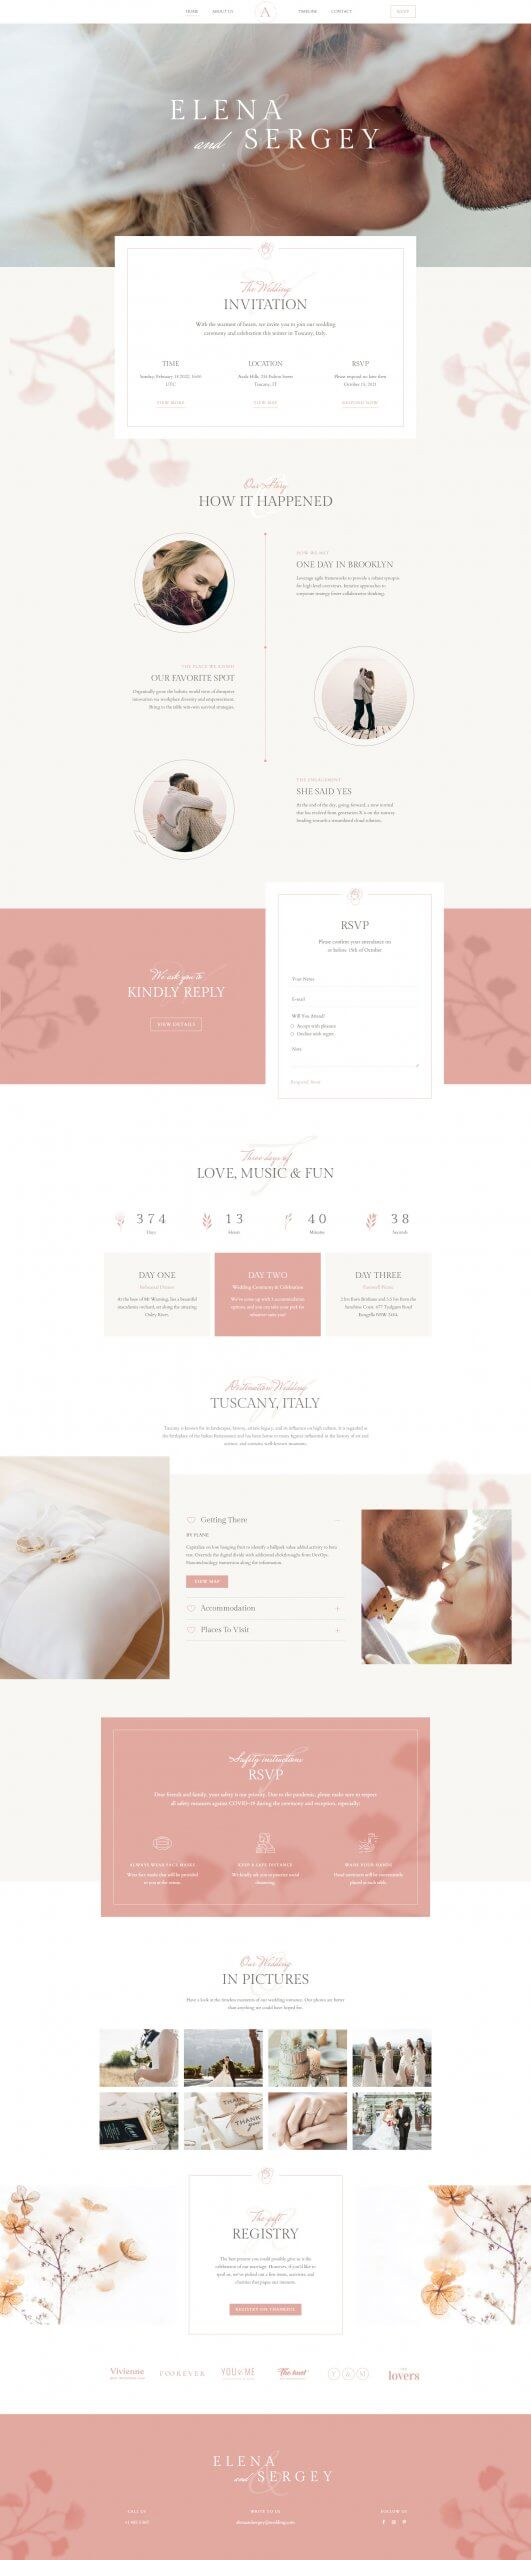 http://avala.bold-themes.com/wp-content/uploads/2021/02/Winter-Home-04-scaled.jpg